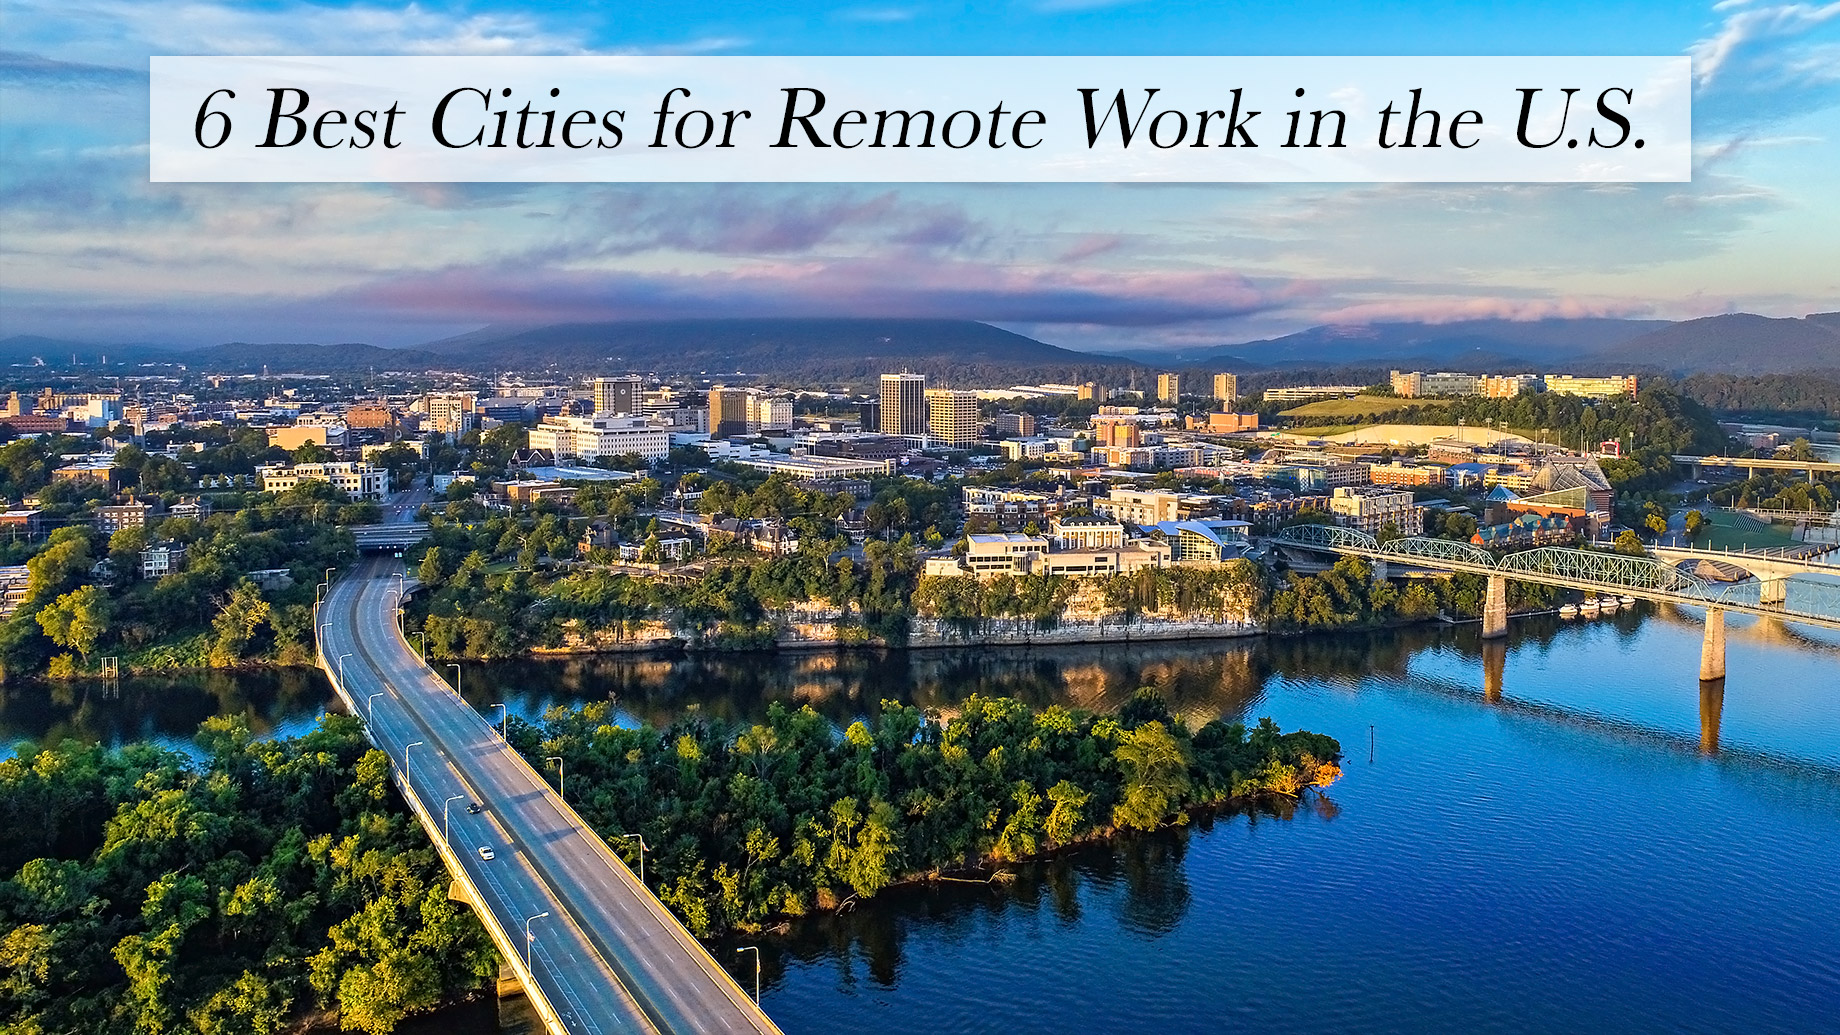 6 Best Cities for Remote Work in the U.S.